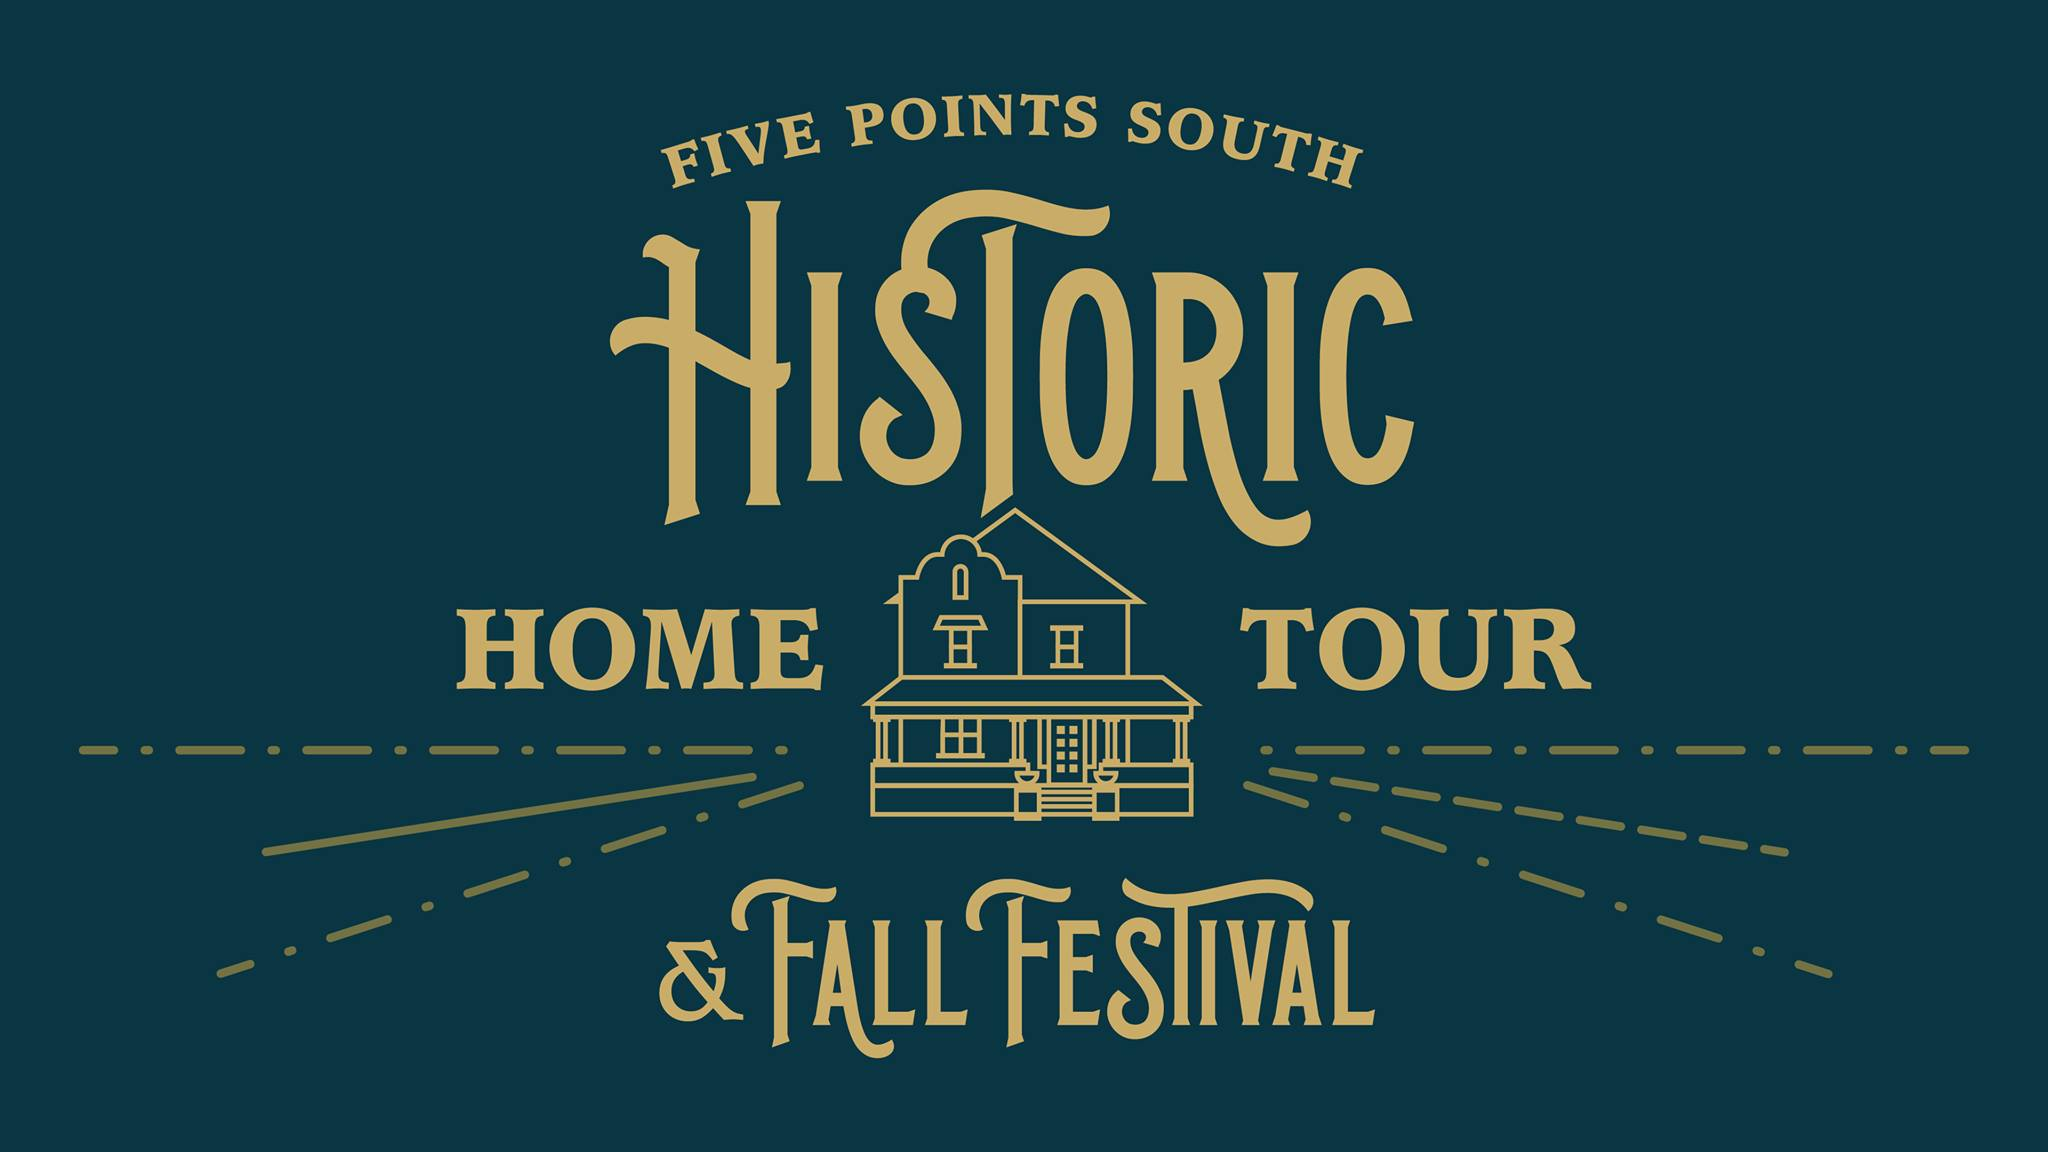 Historic Home Tour 5pts. South